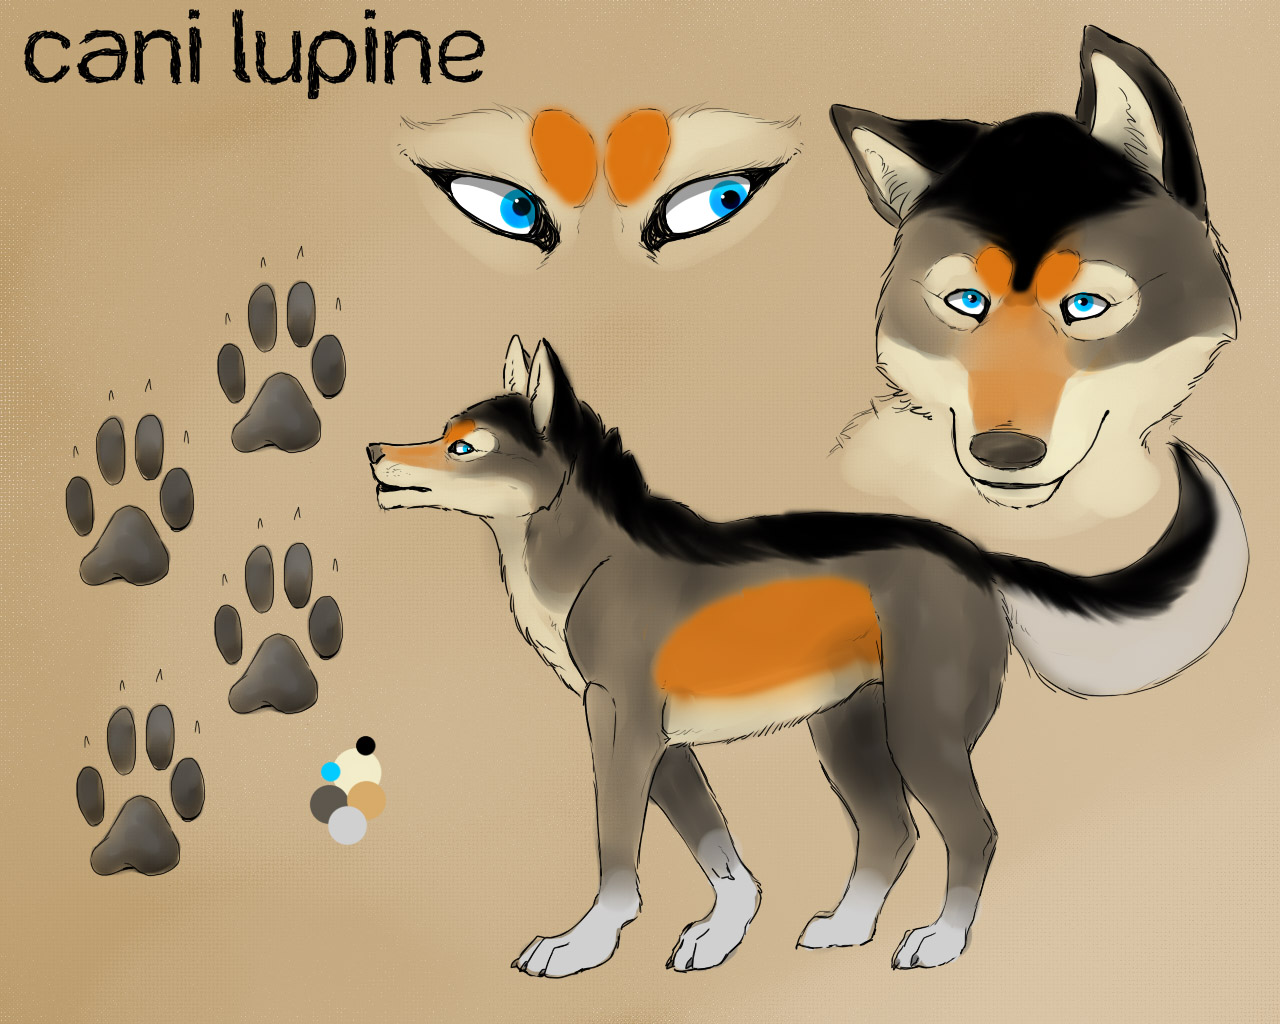 New Cani Lupine ref